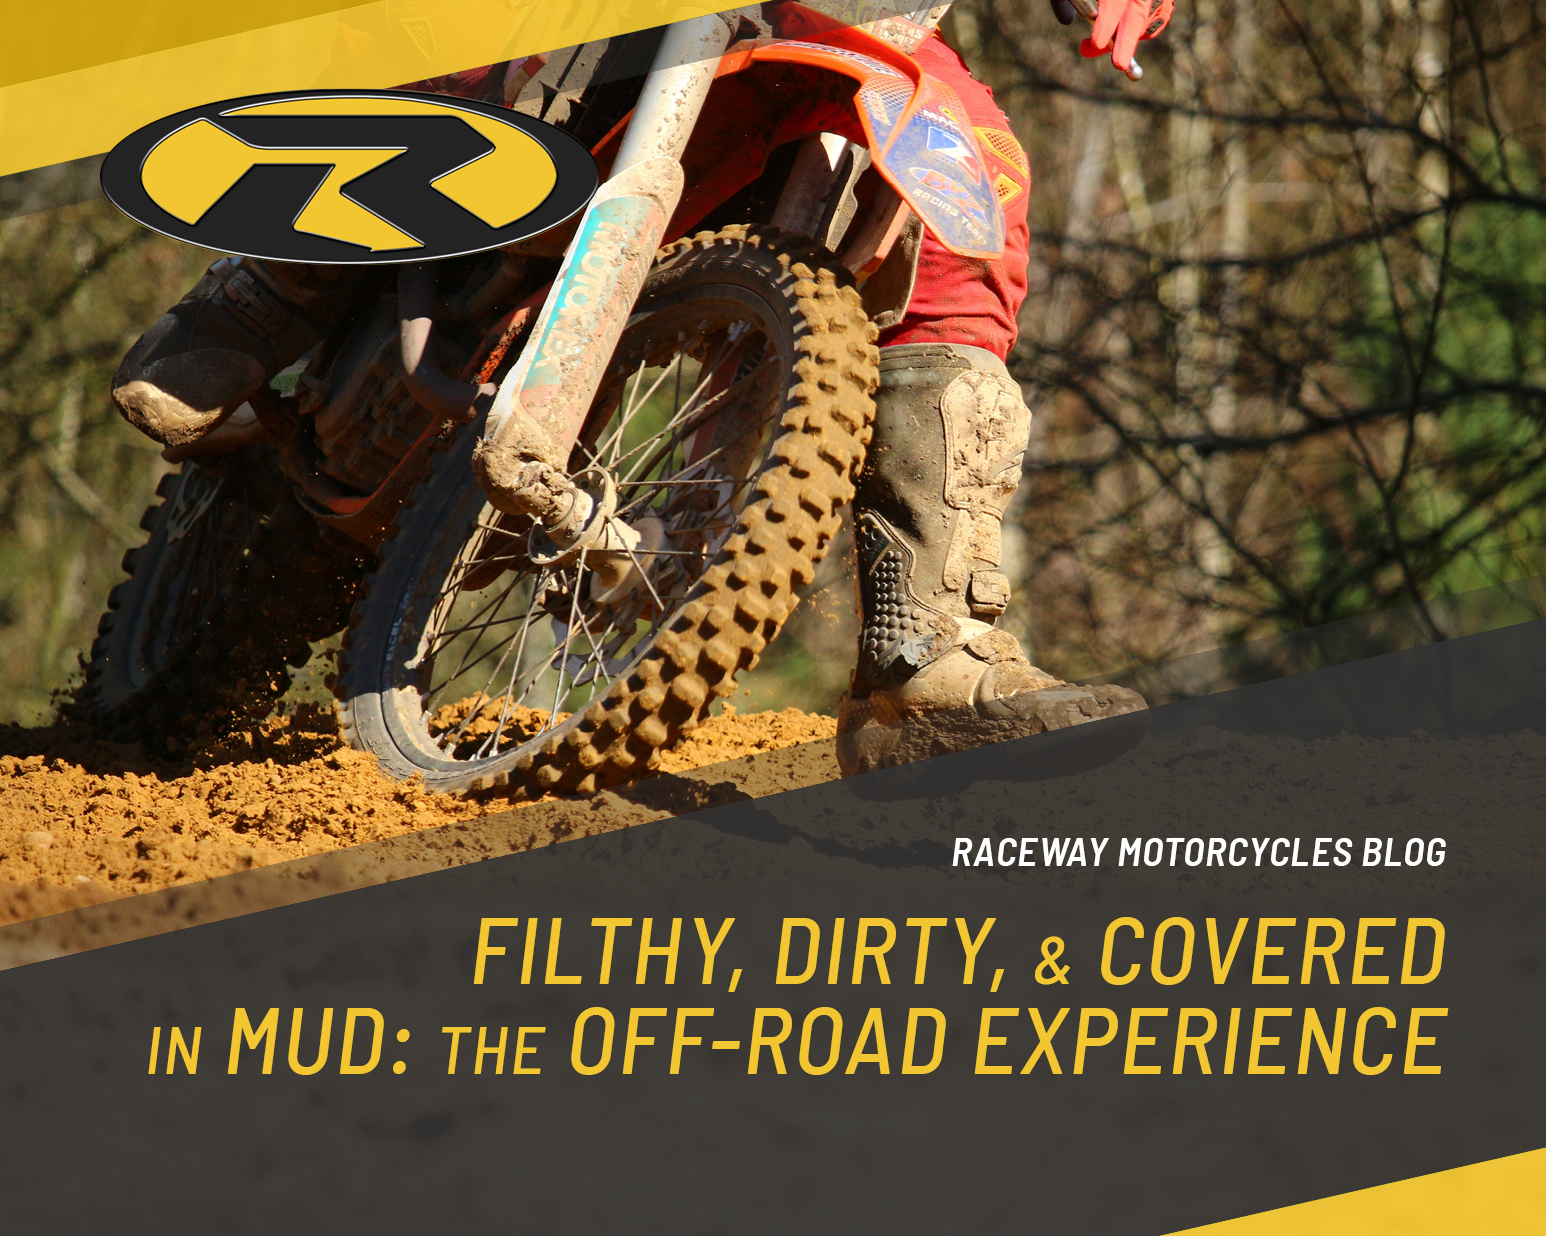 Filthy dirty and covered in mud – The off road experience